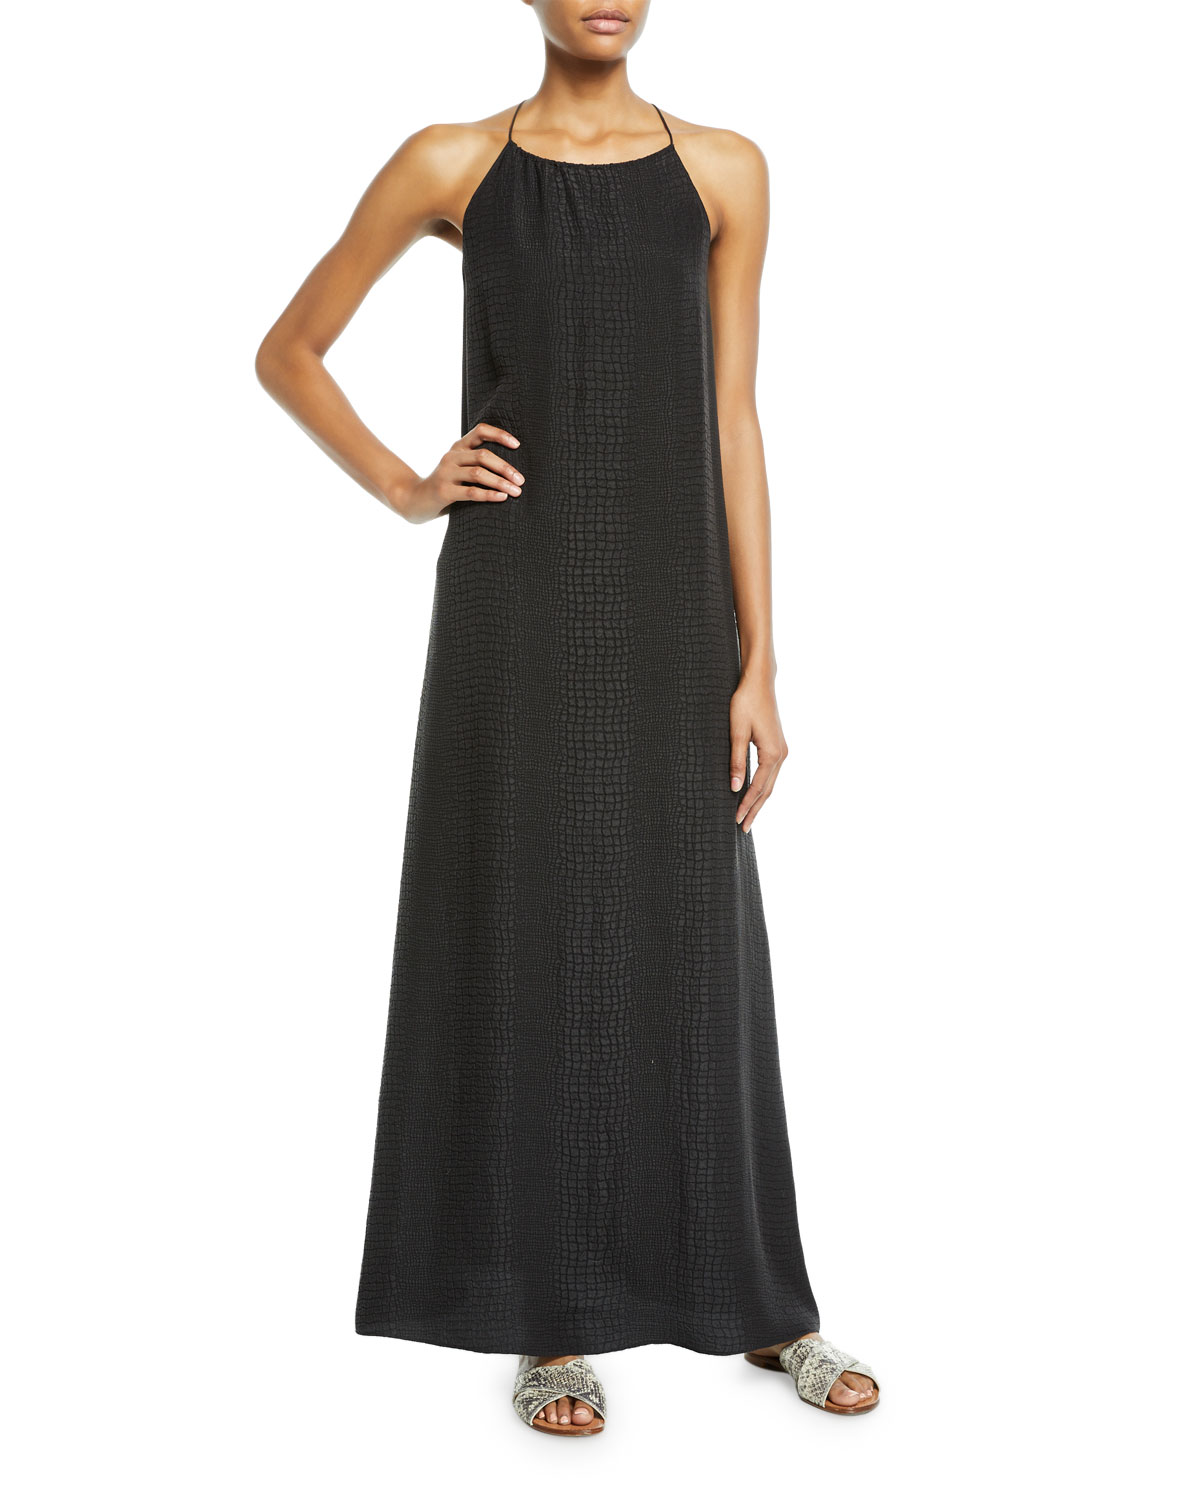 MARIE FRANCE VAN DAMME Croco Jacquard Silk Long Sun Dress in Black